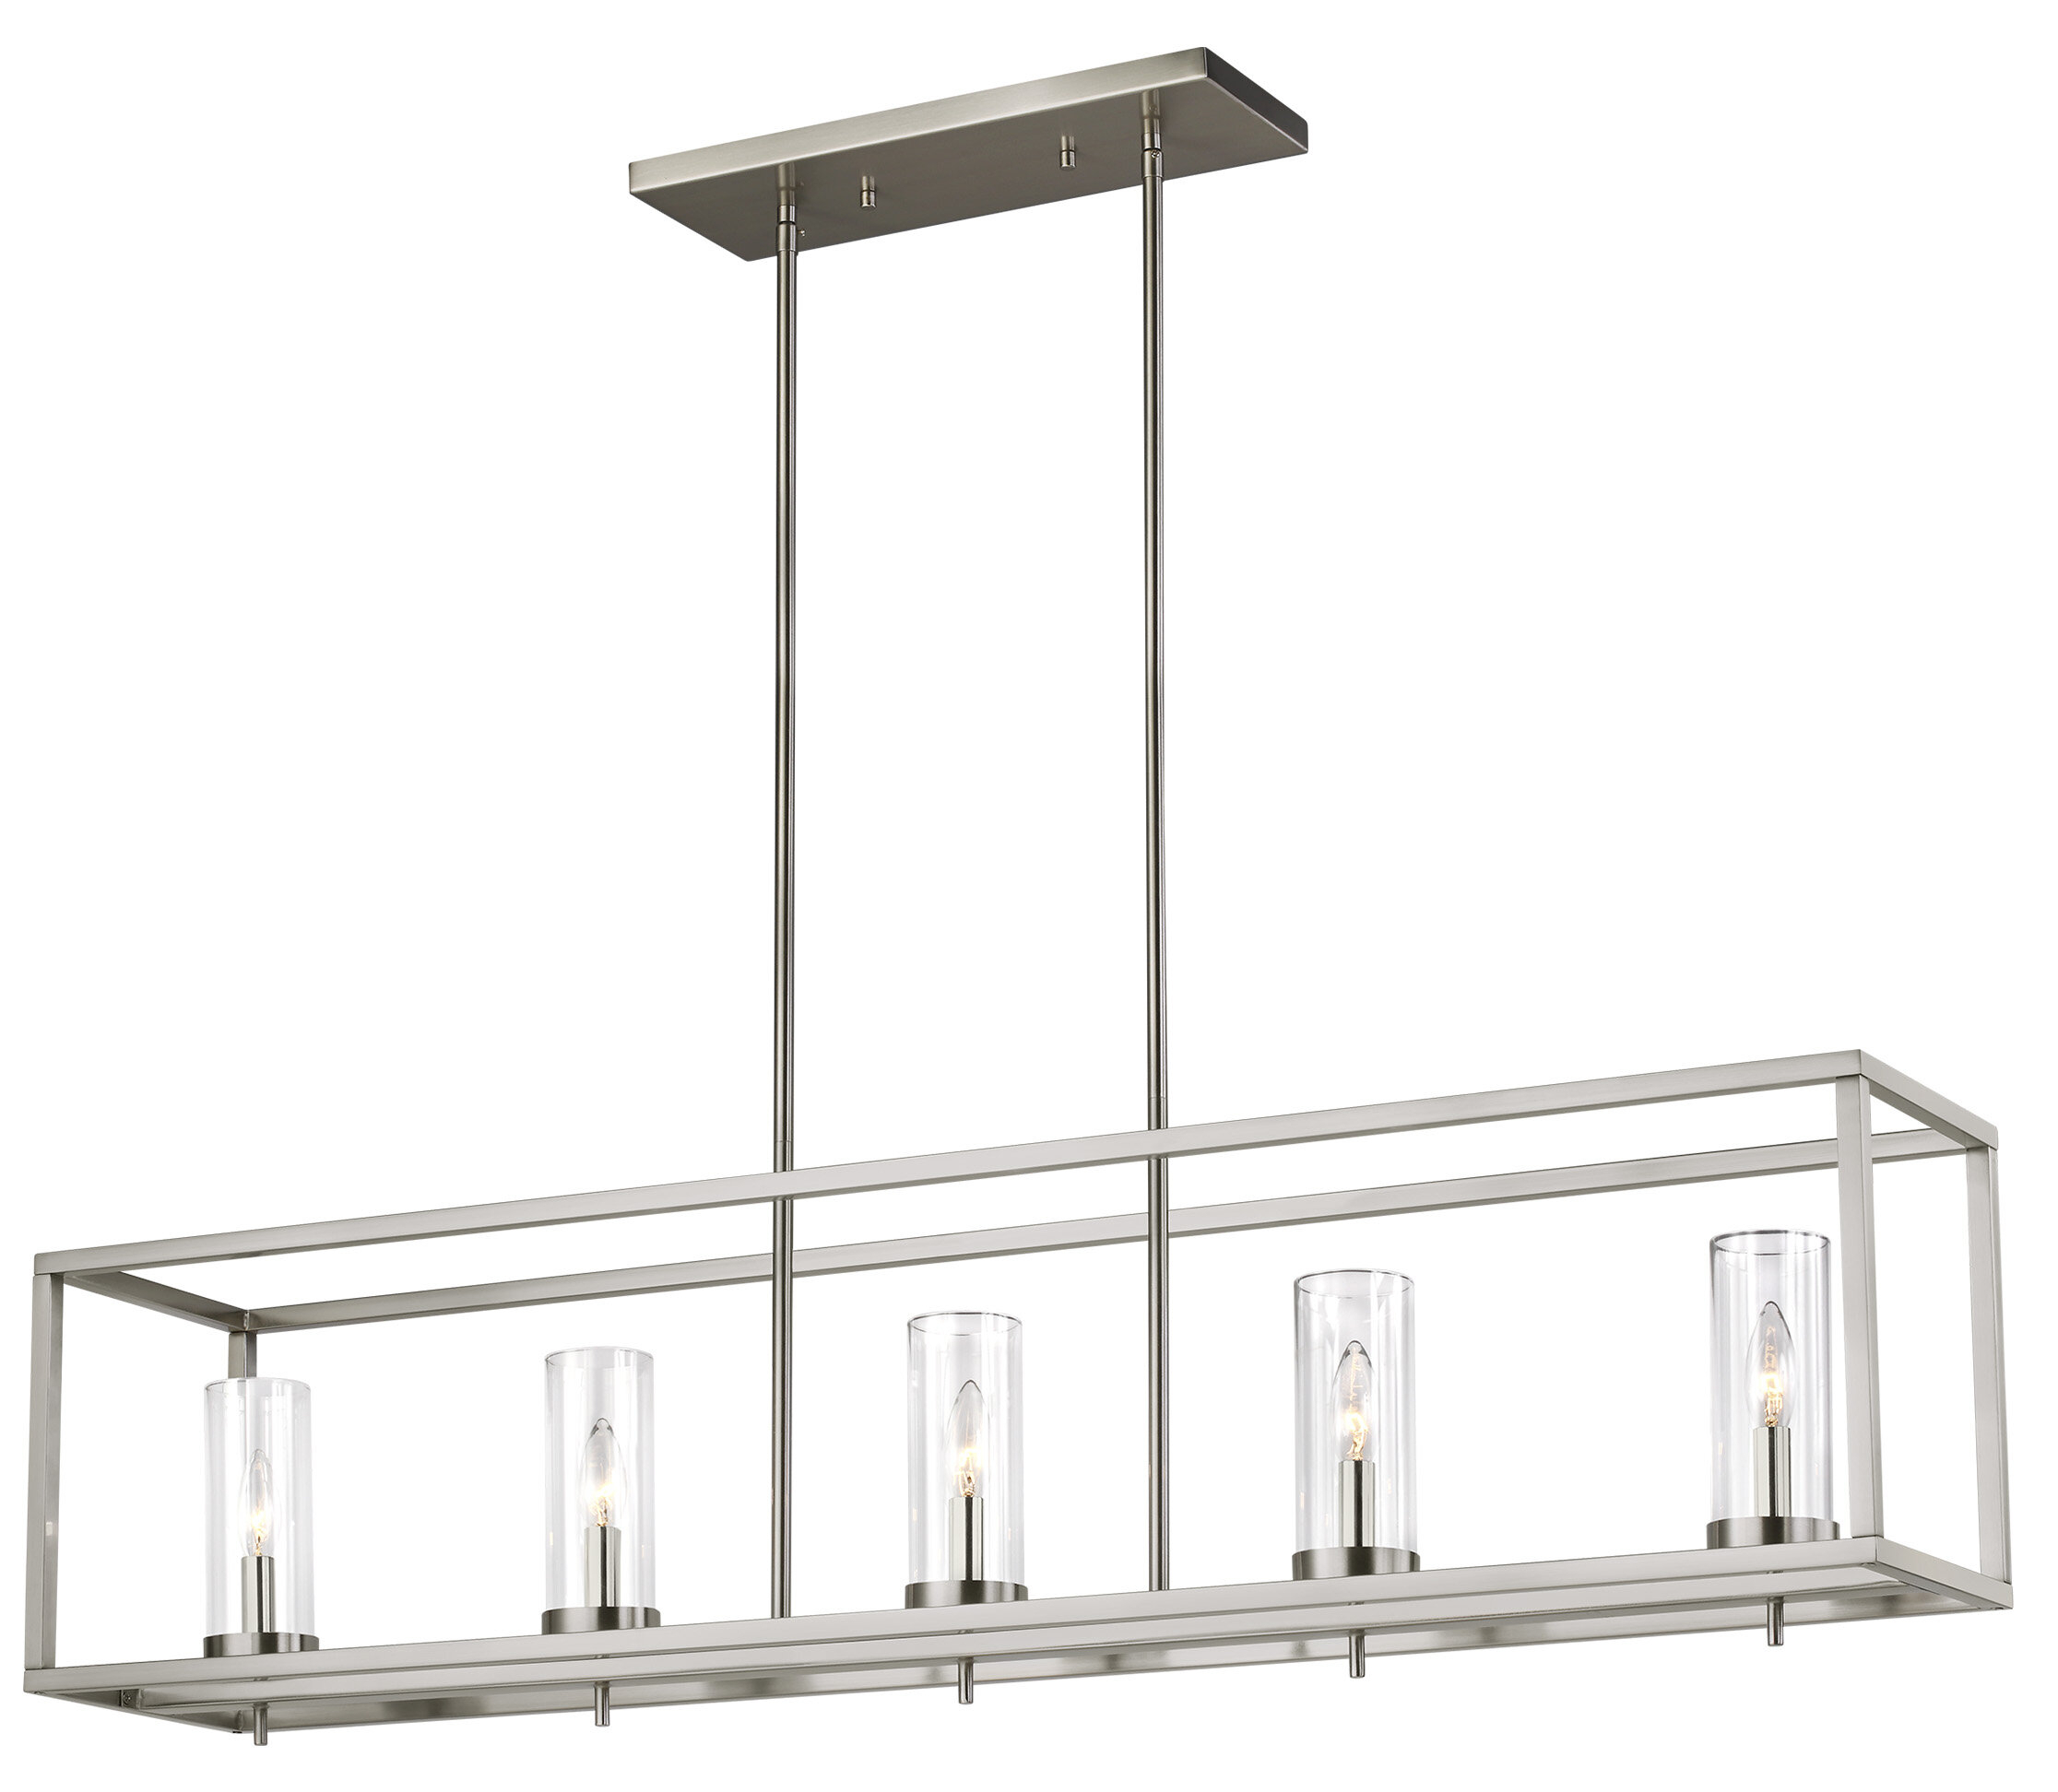 Square & Rectangular Chandeliers Sale – Up To 65% Off Until Within Hewitt 4 Light Square Chandeliers (View 2 of 30)